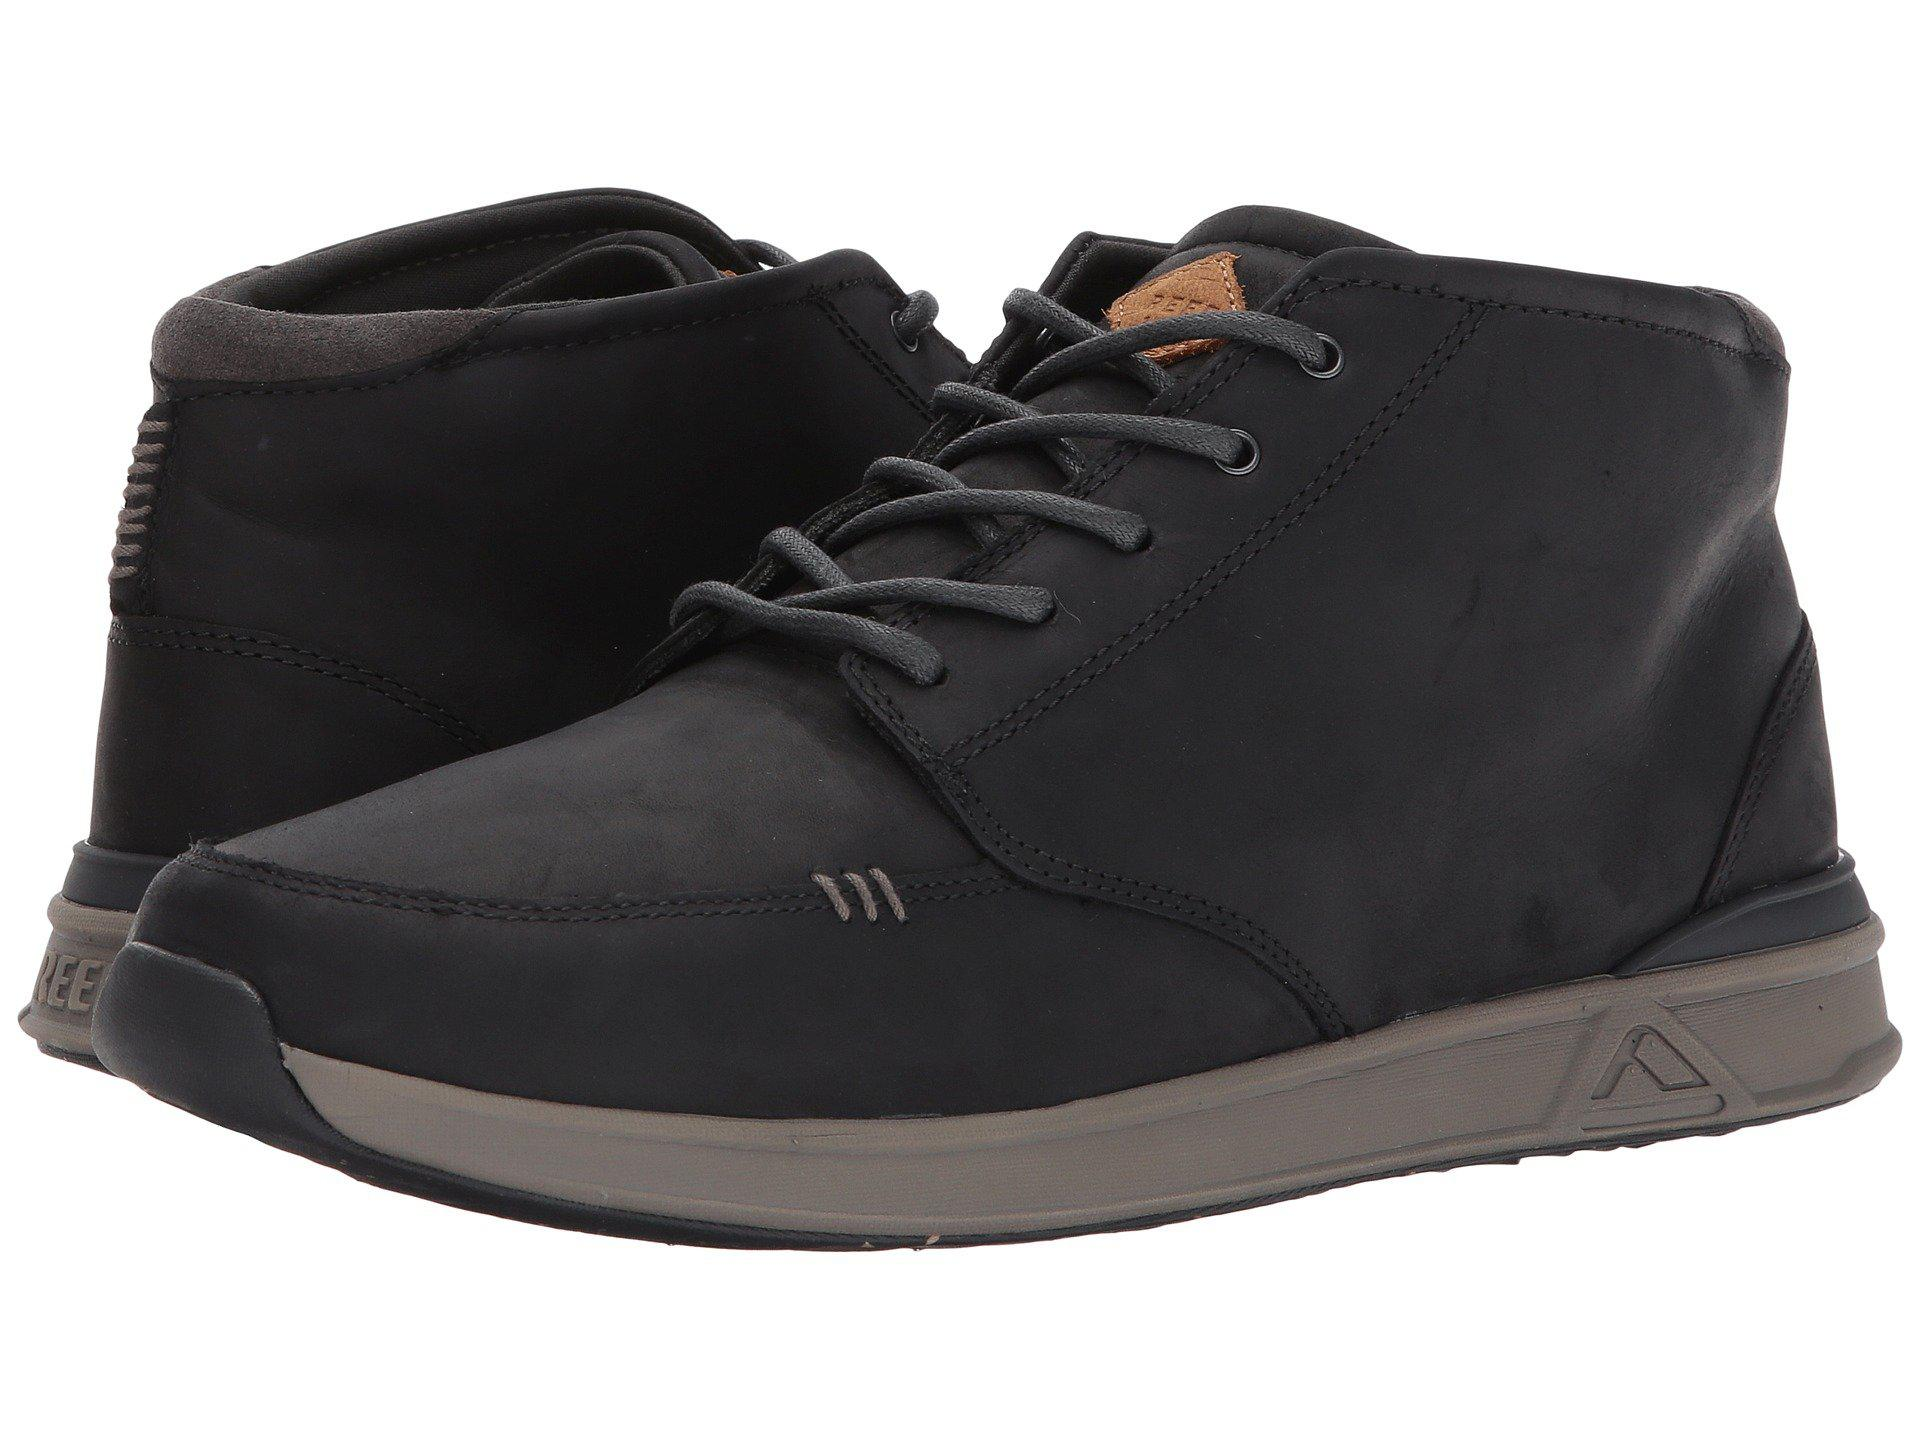 42cab47ab98cc Lyst - Reef Rover Mid Fgl in Black for Men - Save 8%